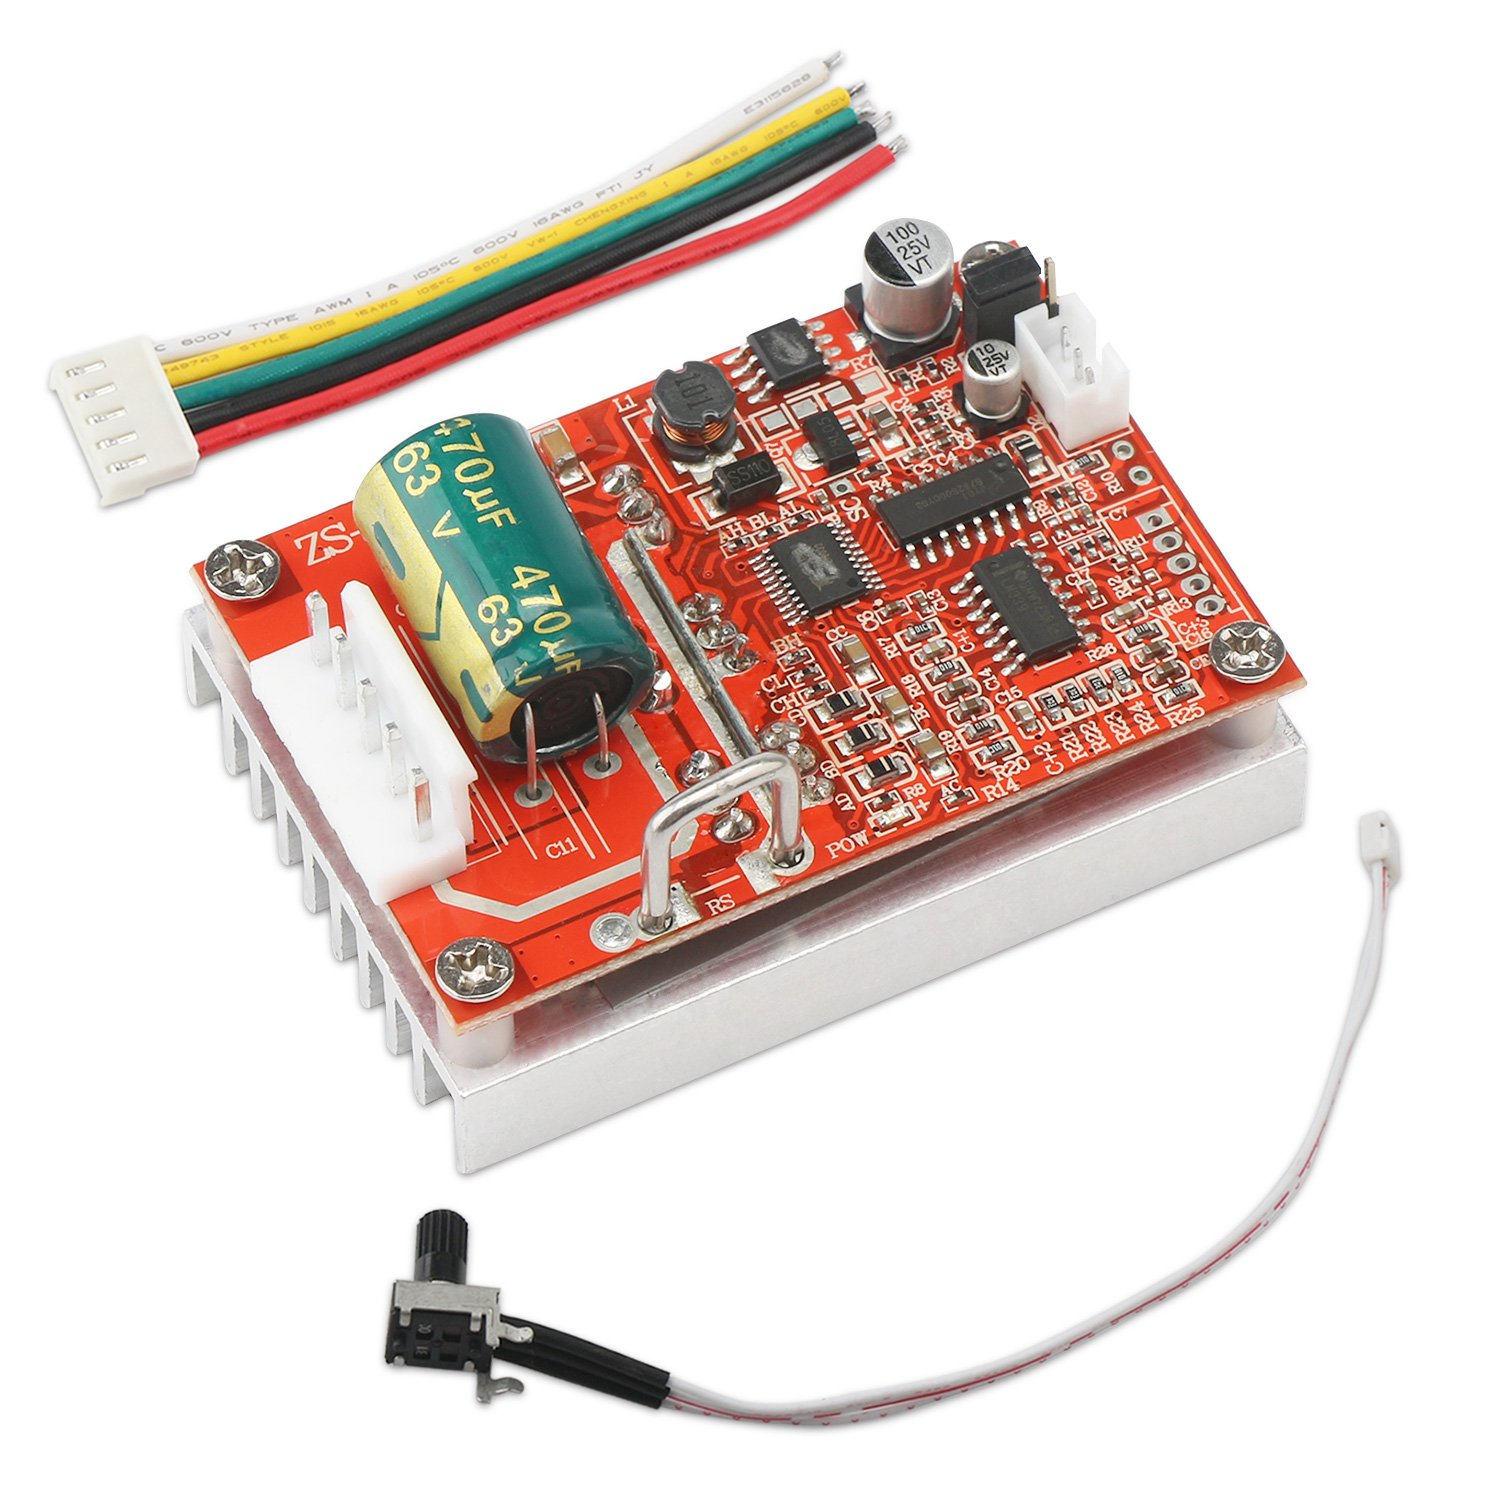 Brushless DC Motor Speed Controller, DROK DC 6-50V Three-phrase Brushless Sensorless Motor Control Board 12v 24v BLDC Motor Driver Regulator Monitor 380W PWM Speed Controller Module with Heat Sink by DROK